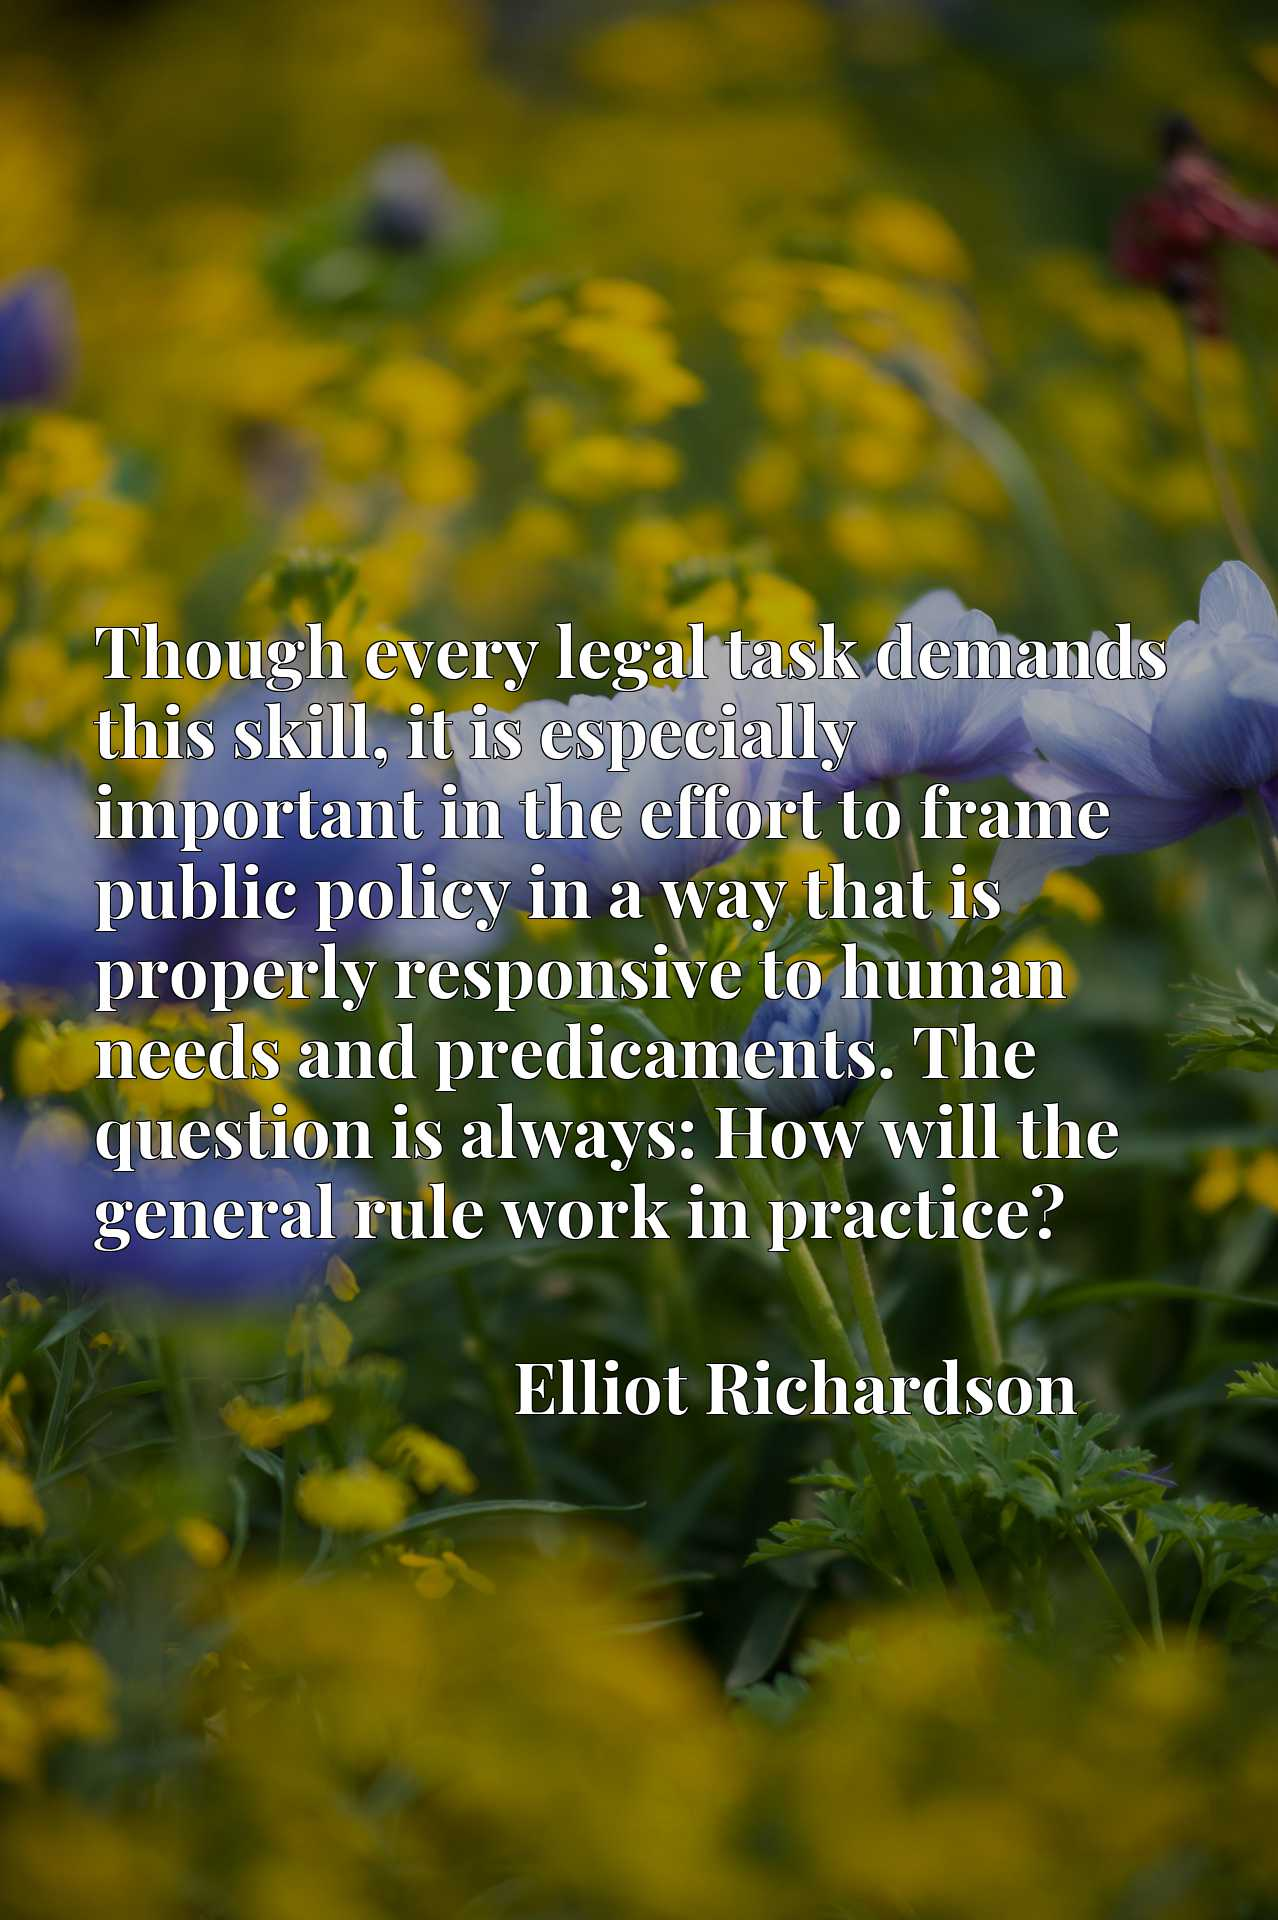 Quote Picture :Though every legal task demands this skill, it is especially important in the effort to frame public policy in a way that is properly responsive to human needs and predicaments. The question is always: How will the general rule work in practice?